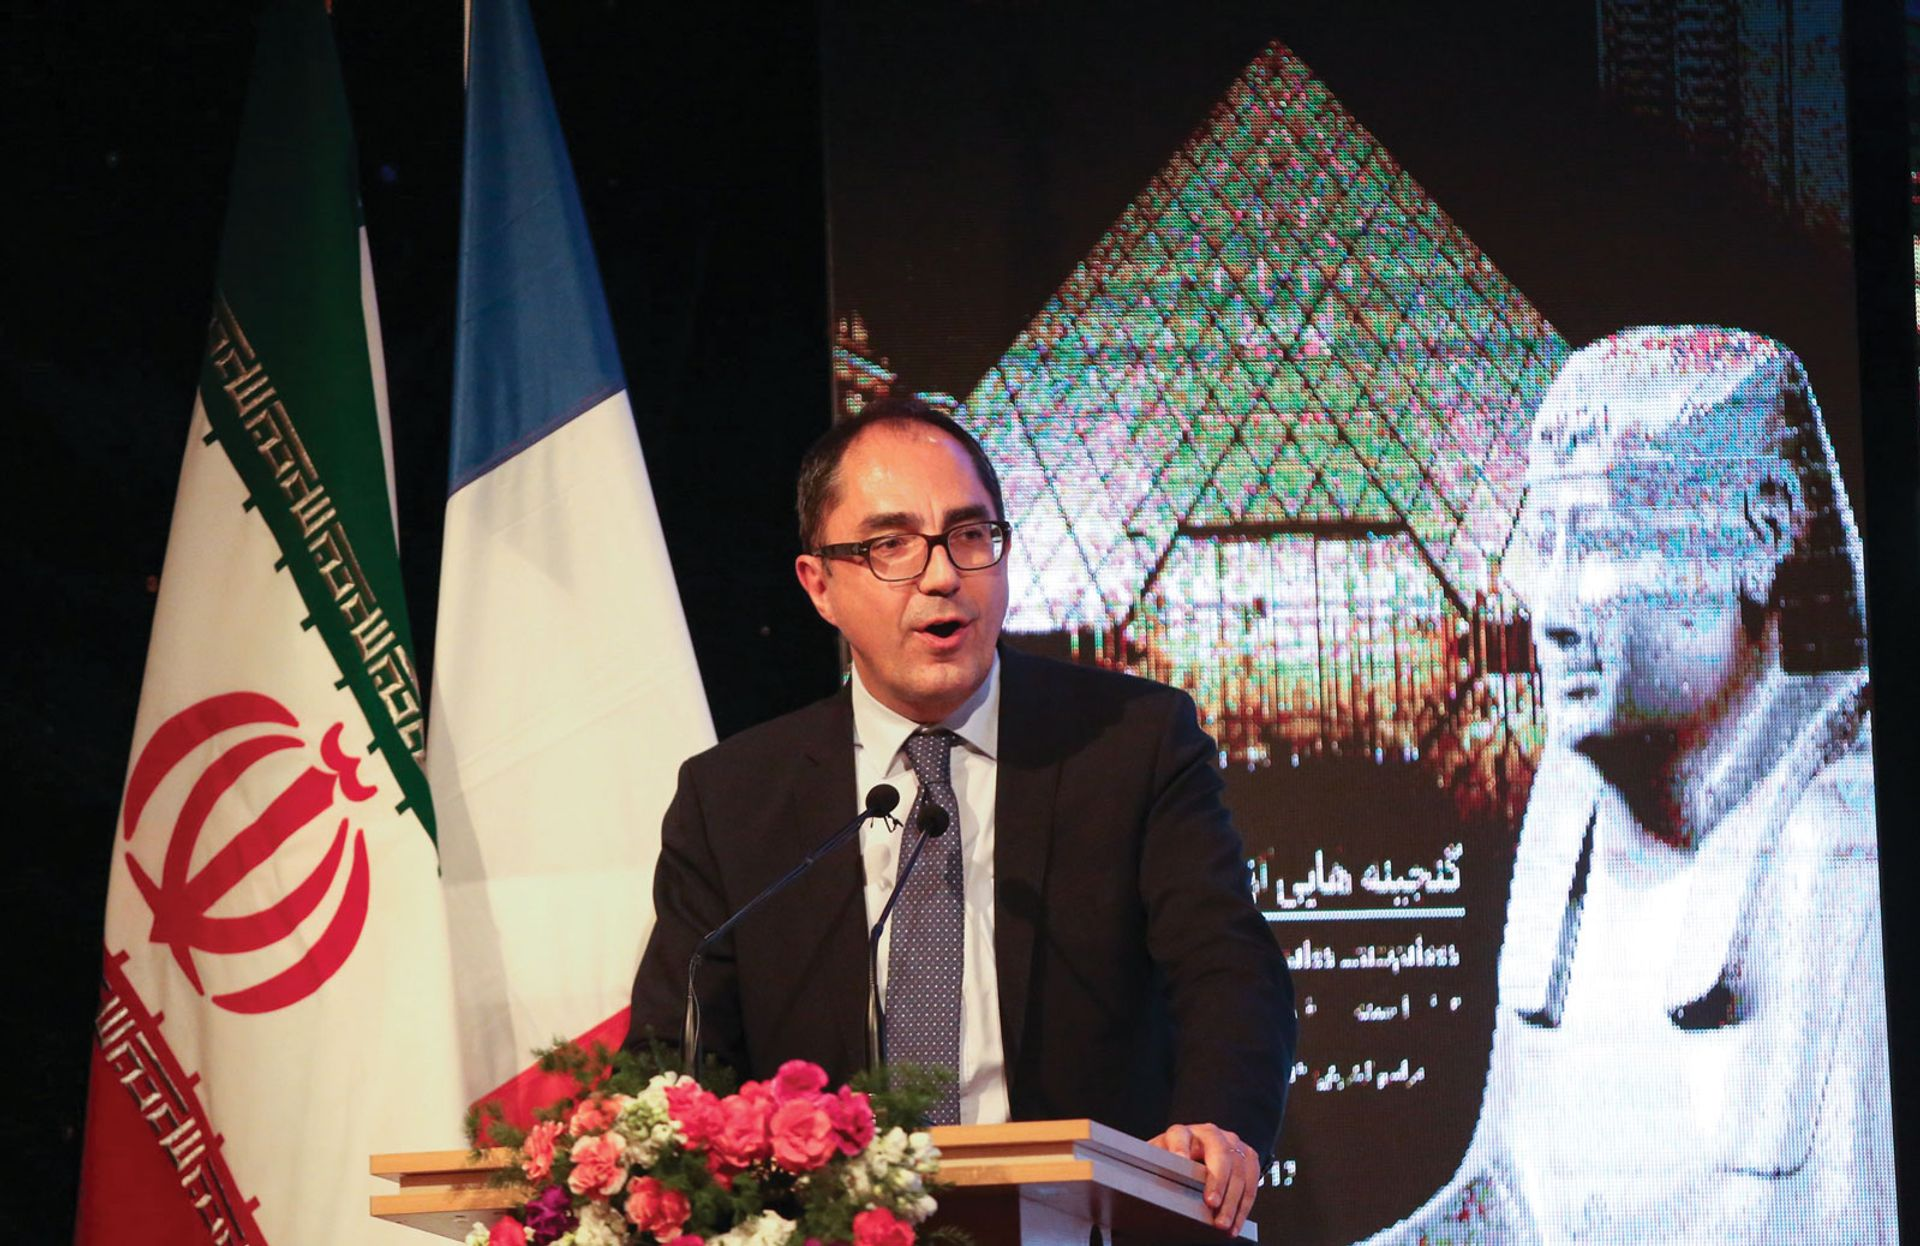 Martinez speaks at the opening of the landmark Louvre exhibition in Iran 2018 Anadolu Agency; Fatemeh Bahrami/Anadolu Agency/Getty Images